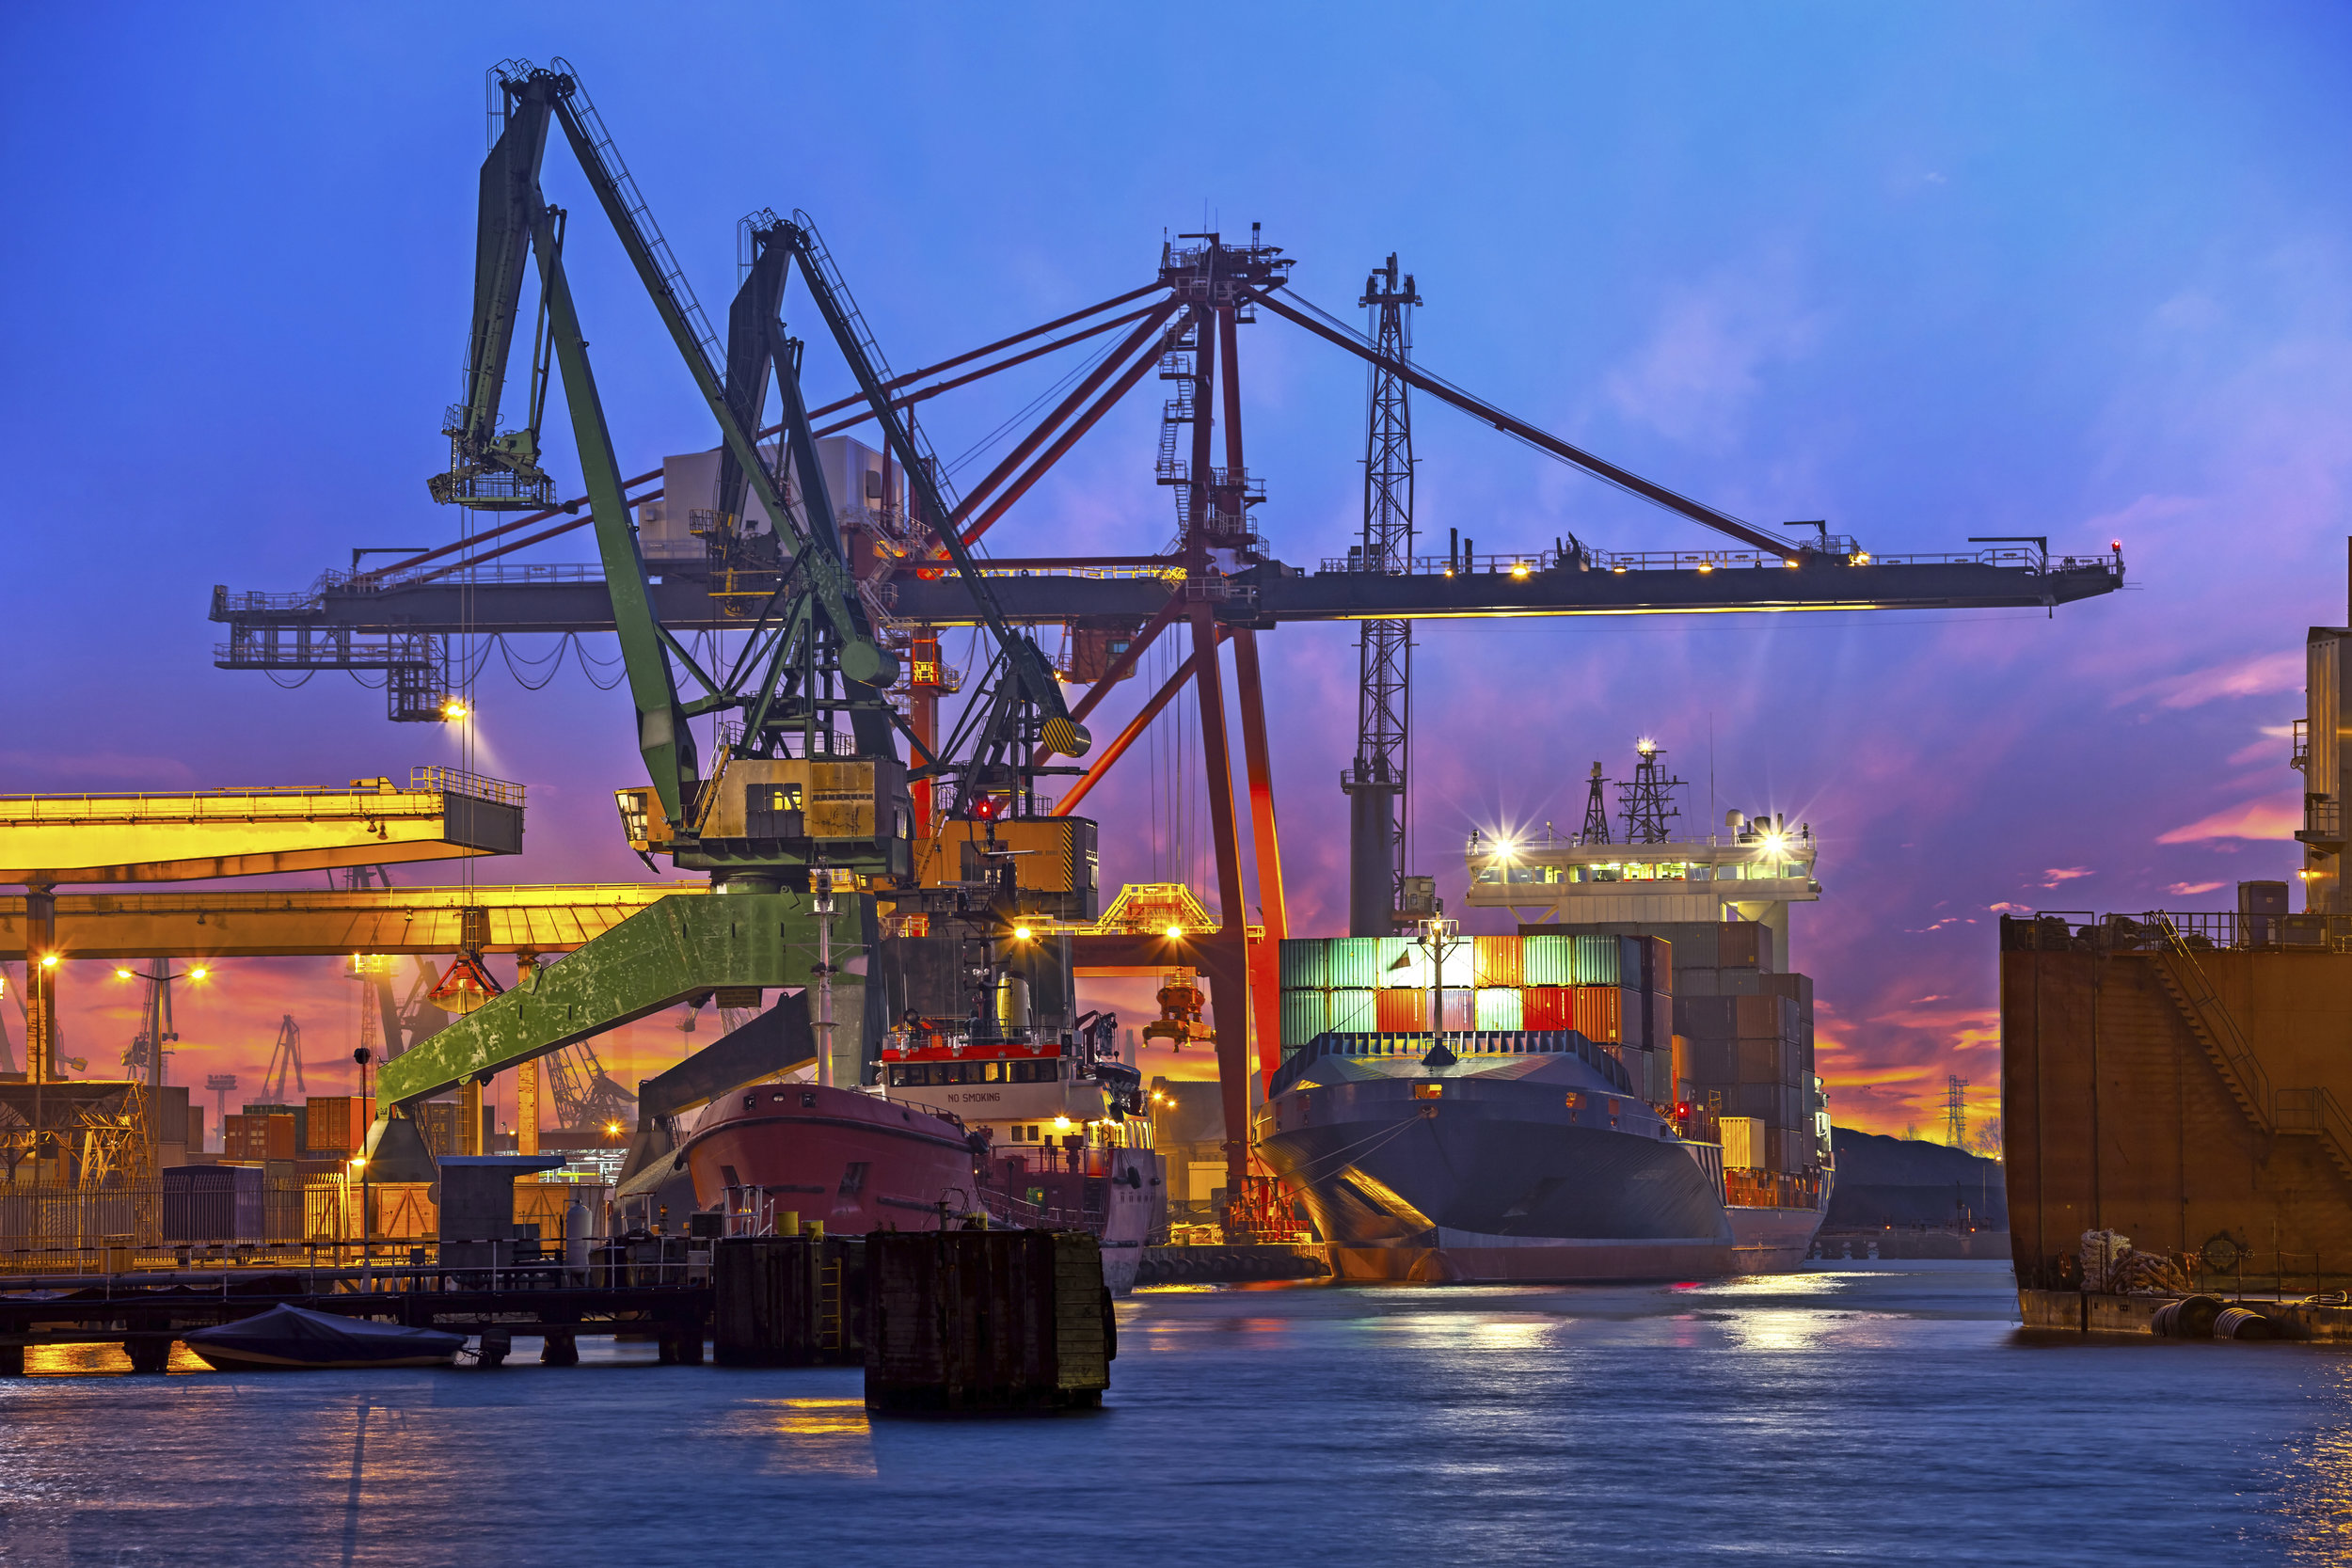 The Strategic Alliance will help provide maximum benefits to port clients.